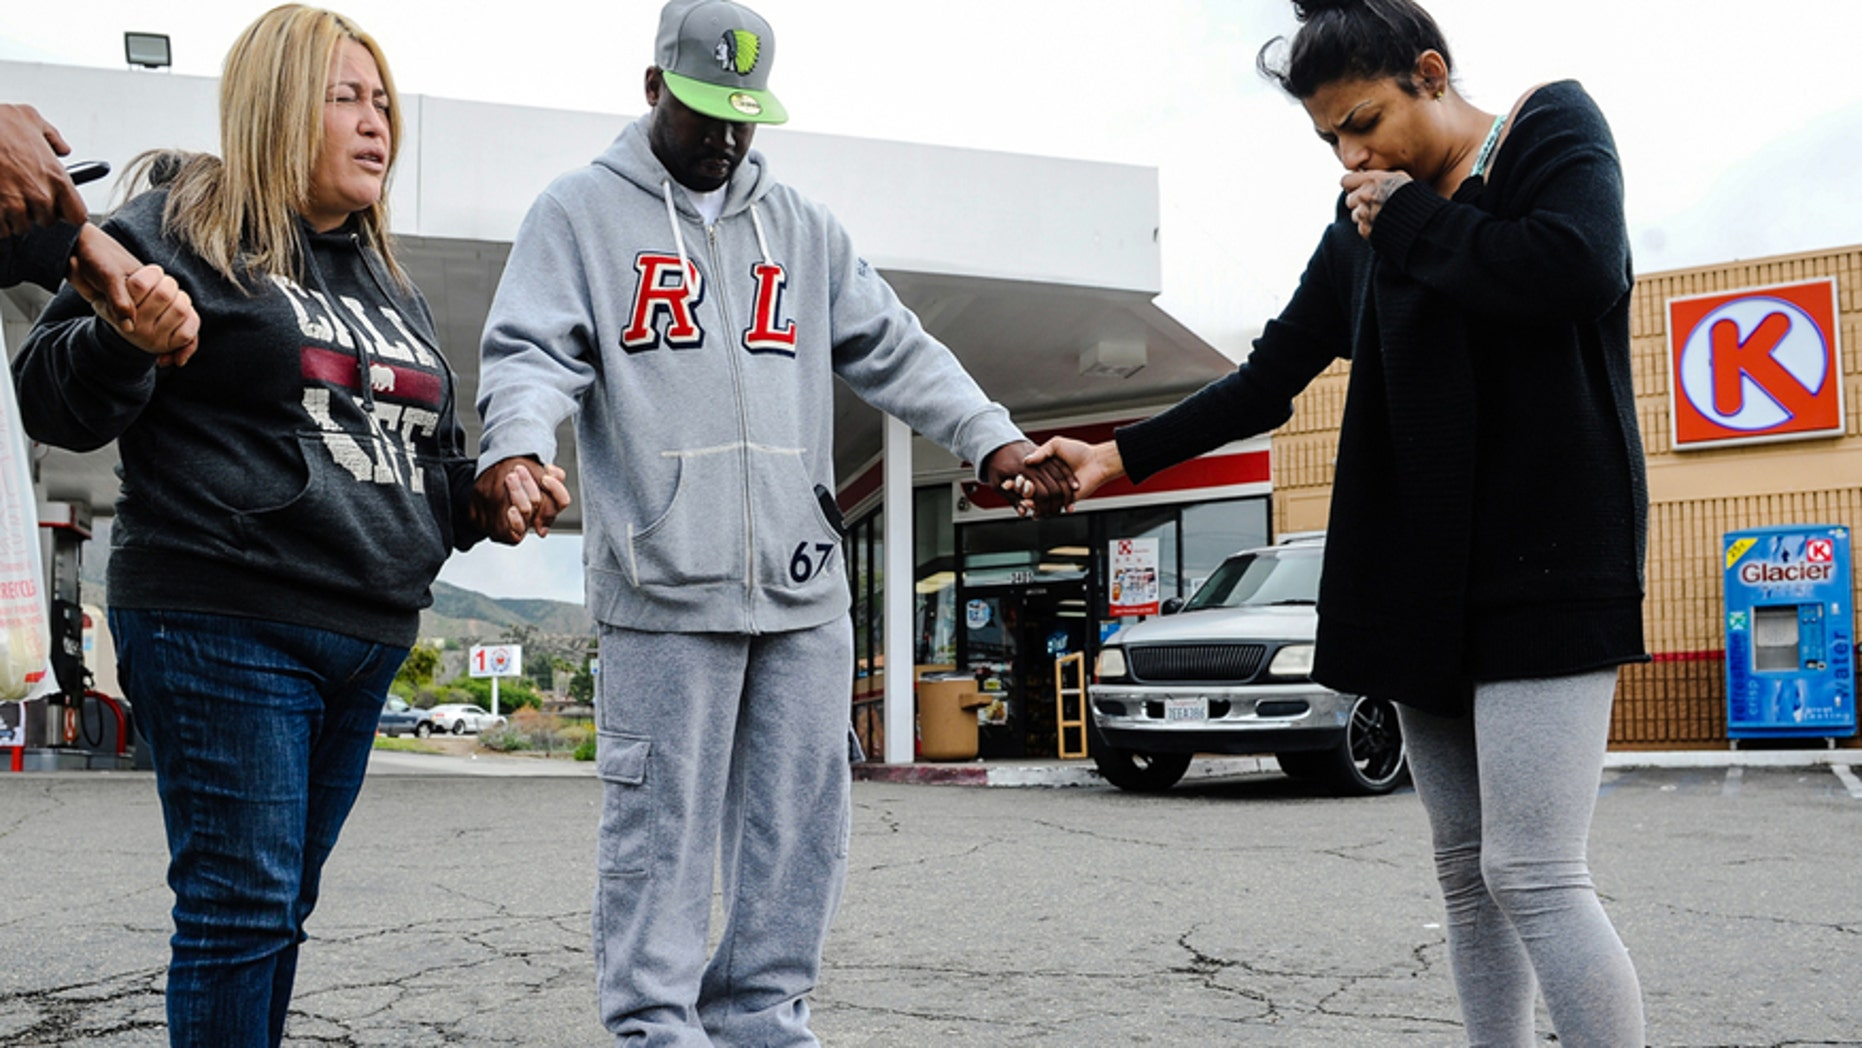 March 14, 2016: Francine Prieto-Estrada, left, leads Donald Pride and Elisa Castro in a prayer at memorial site for 12-year-old shooting victim Jason Spears at a Circle K in San Bernardino, Calif.